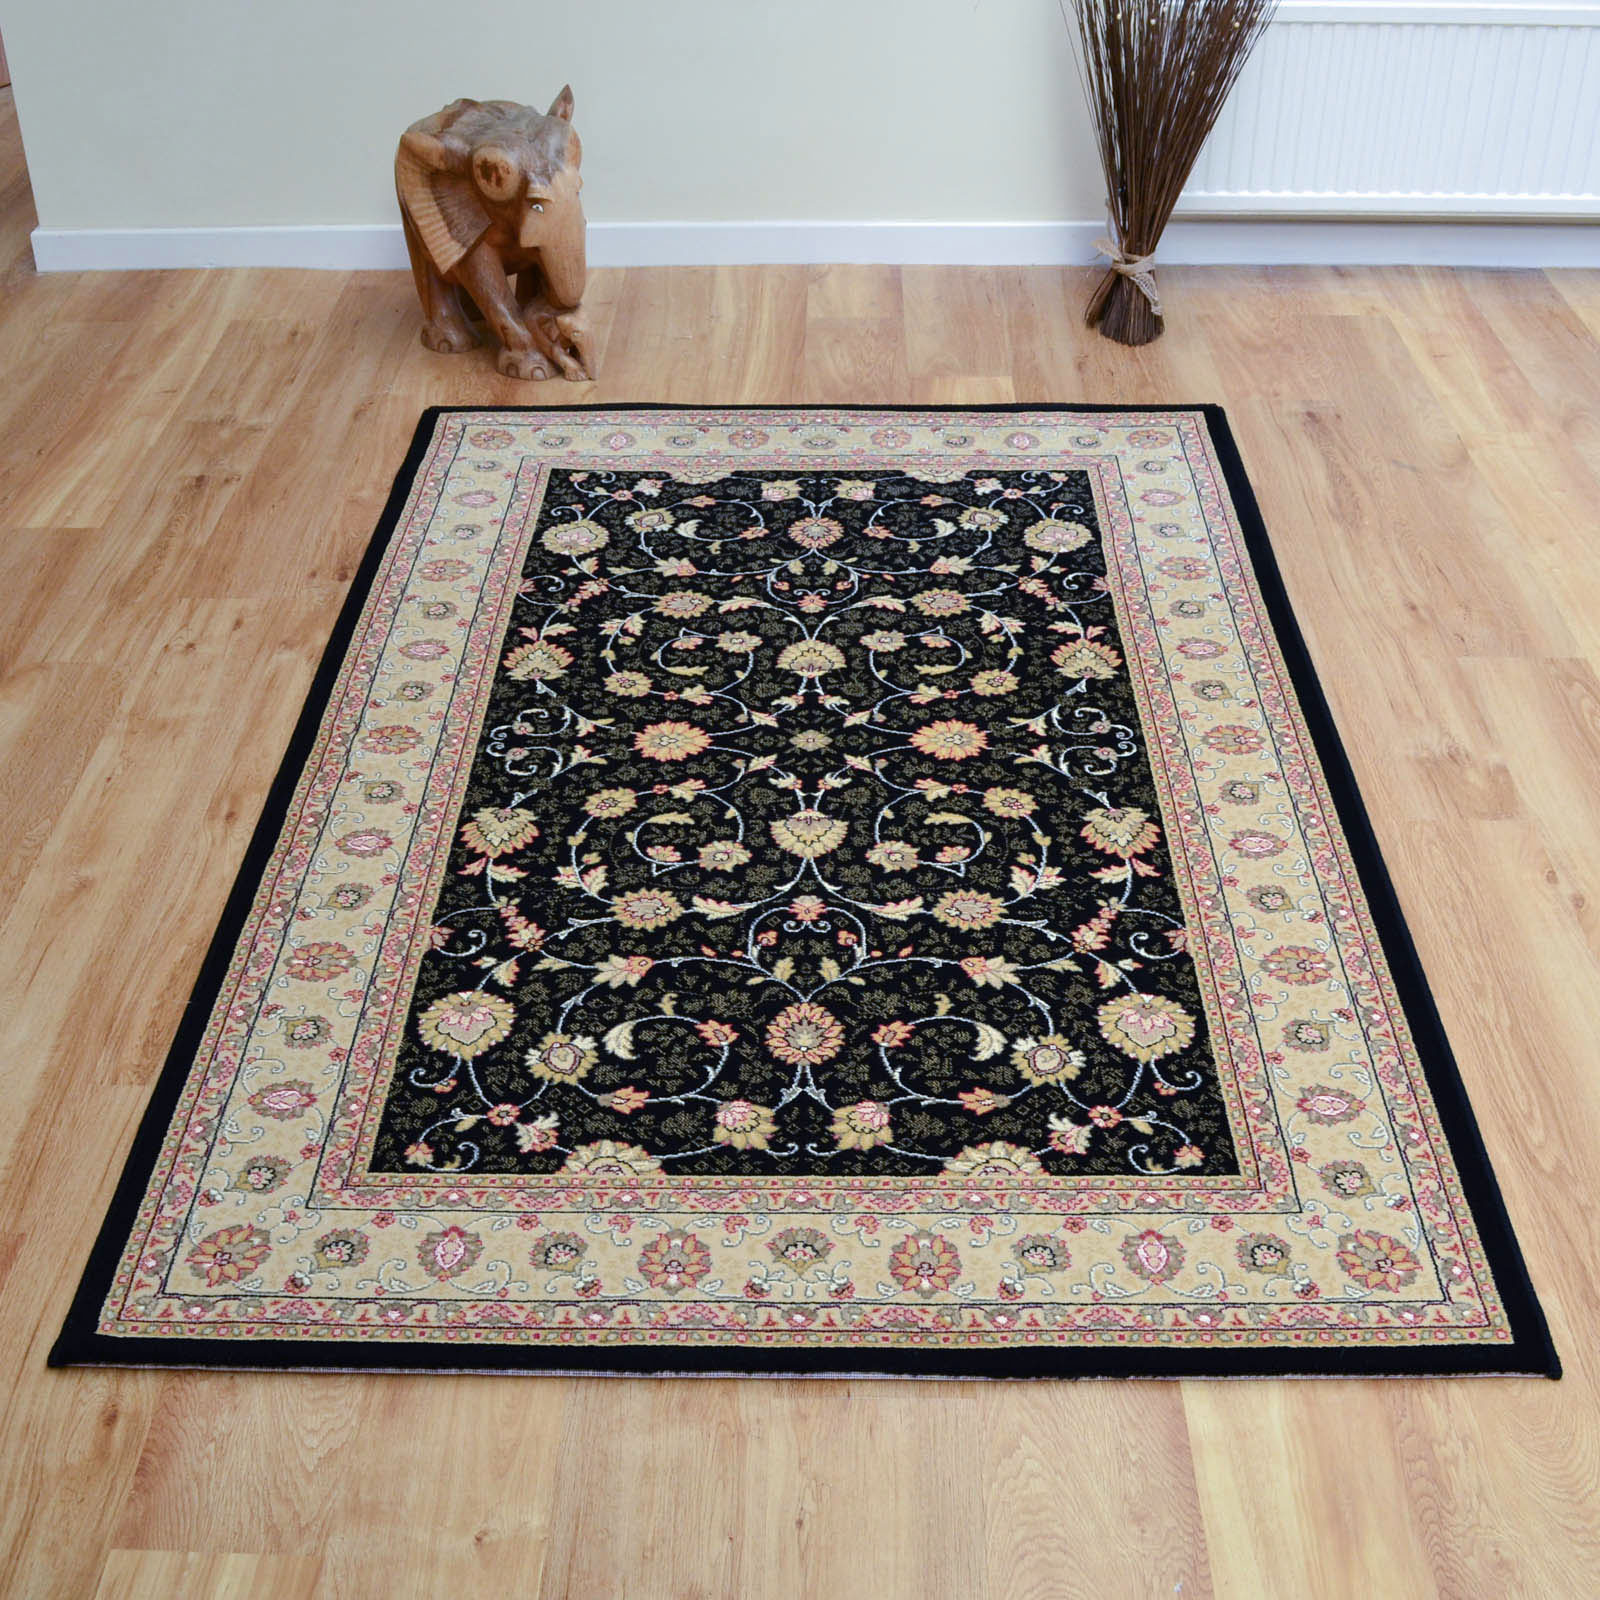 Noble Art Rugs 6529 491 In Green Buy Online From The Rug